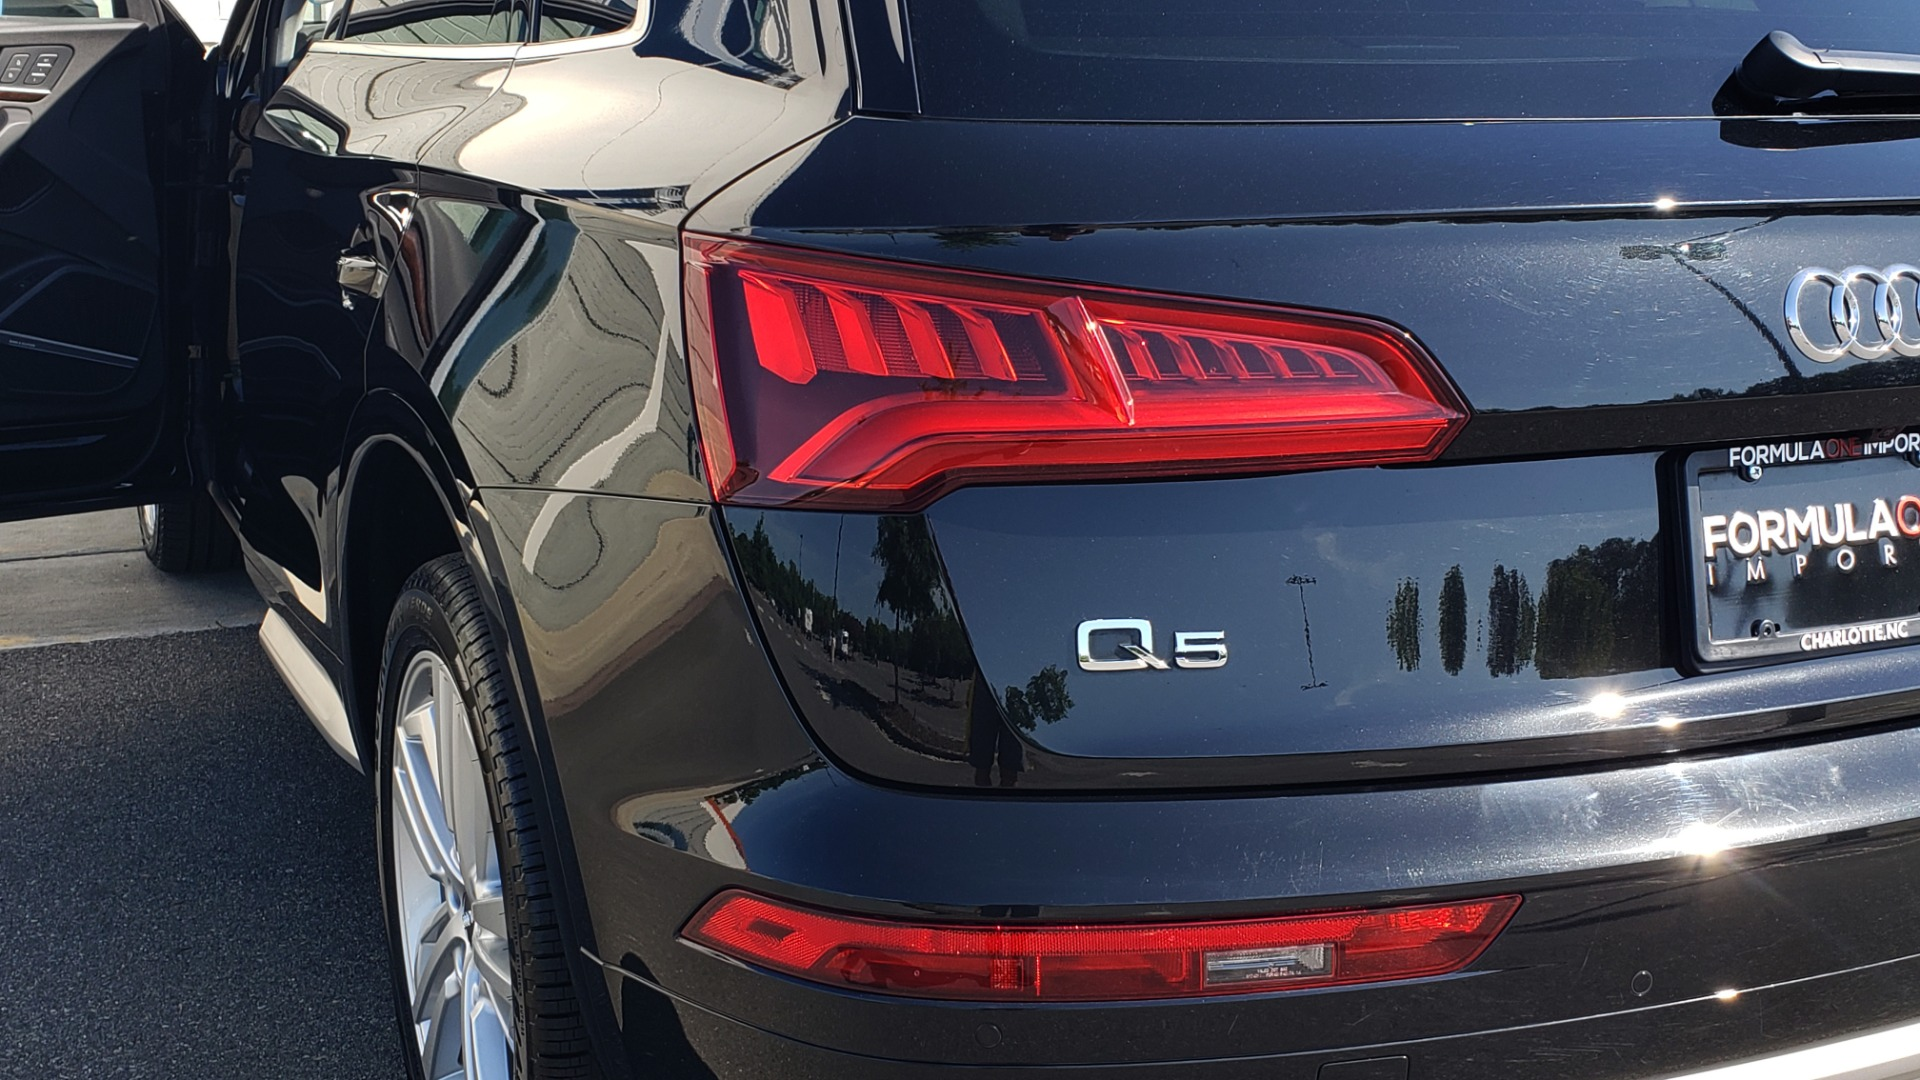 Used 2018 Audi Q5 PREMIUM PLUS / NAV / B&O SND / CLD WTHR / SUNROOF / REARVIEW for sale Sold at Formula Imports in Charlotte NC 28227 28